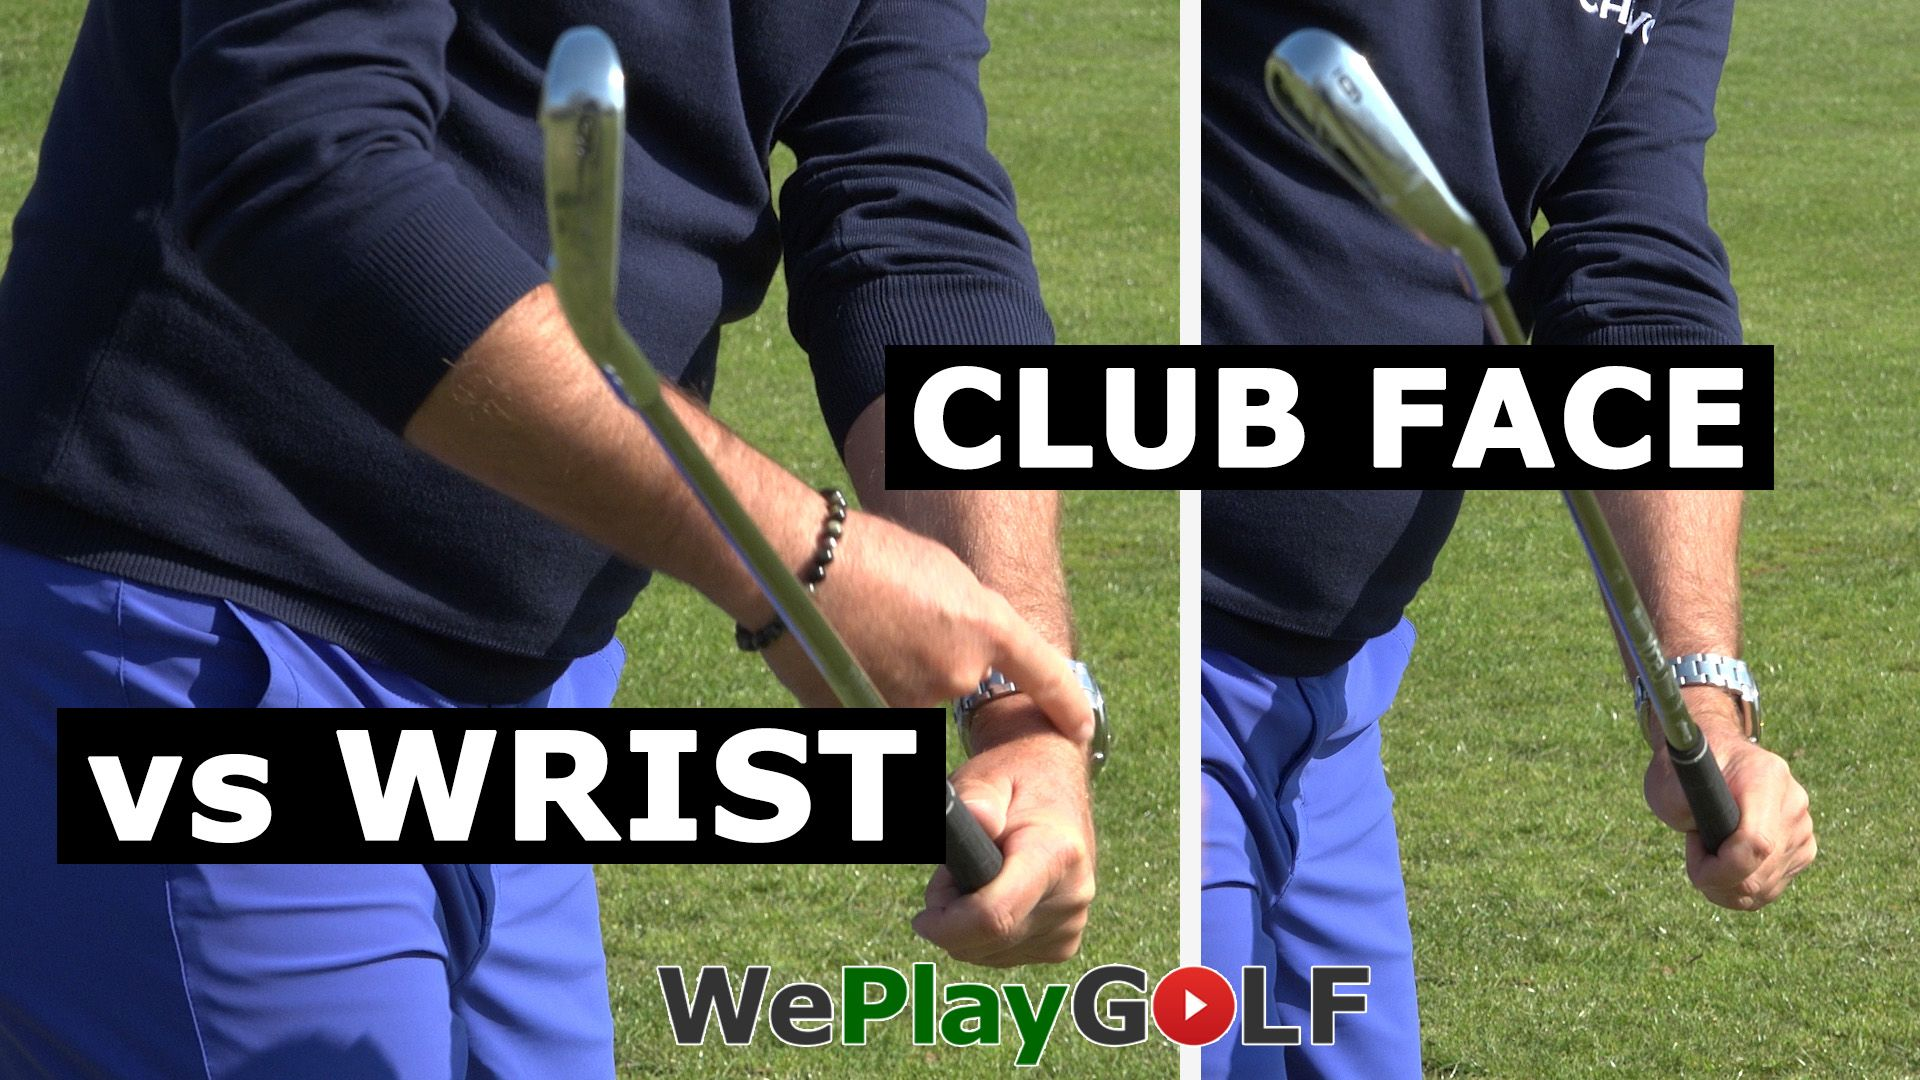 videotip: Controleer de pols in de golf swing - Video - Blog